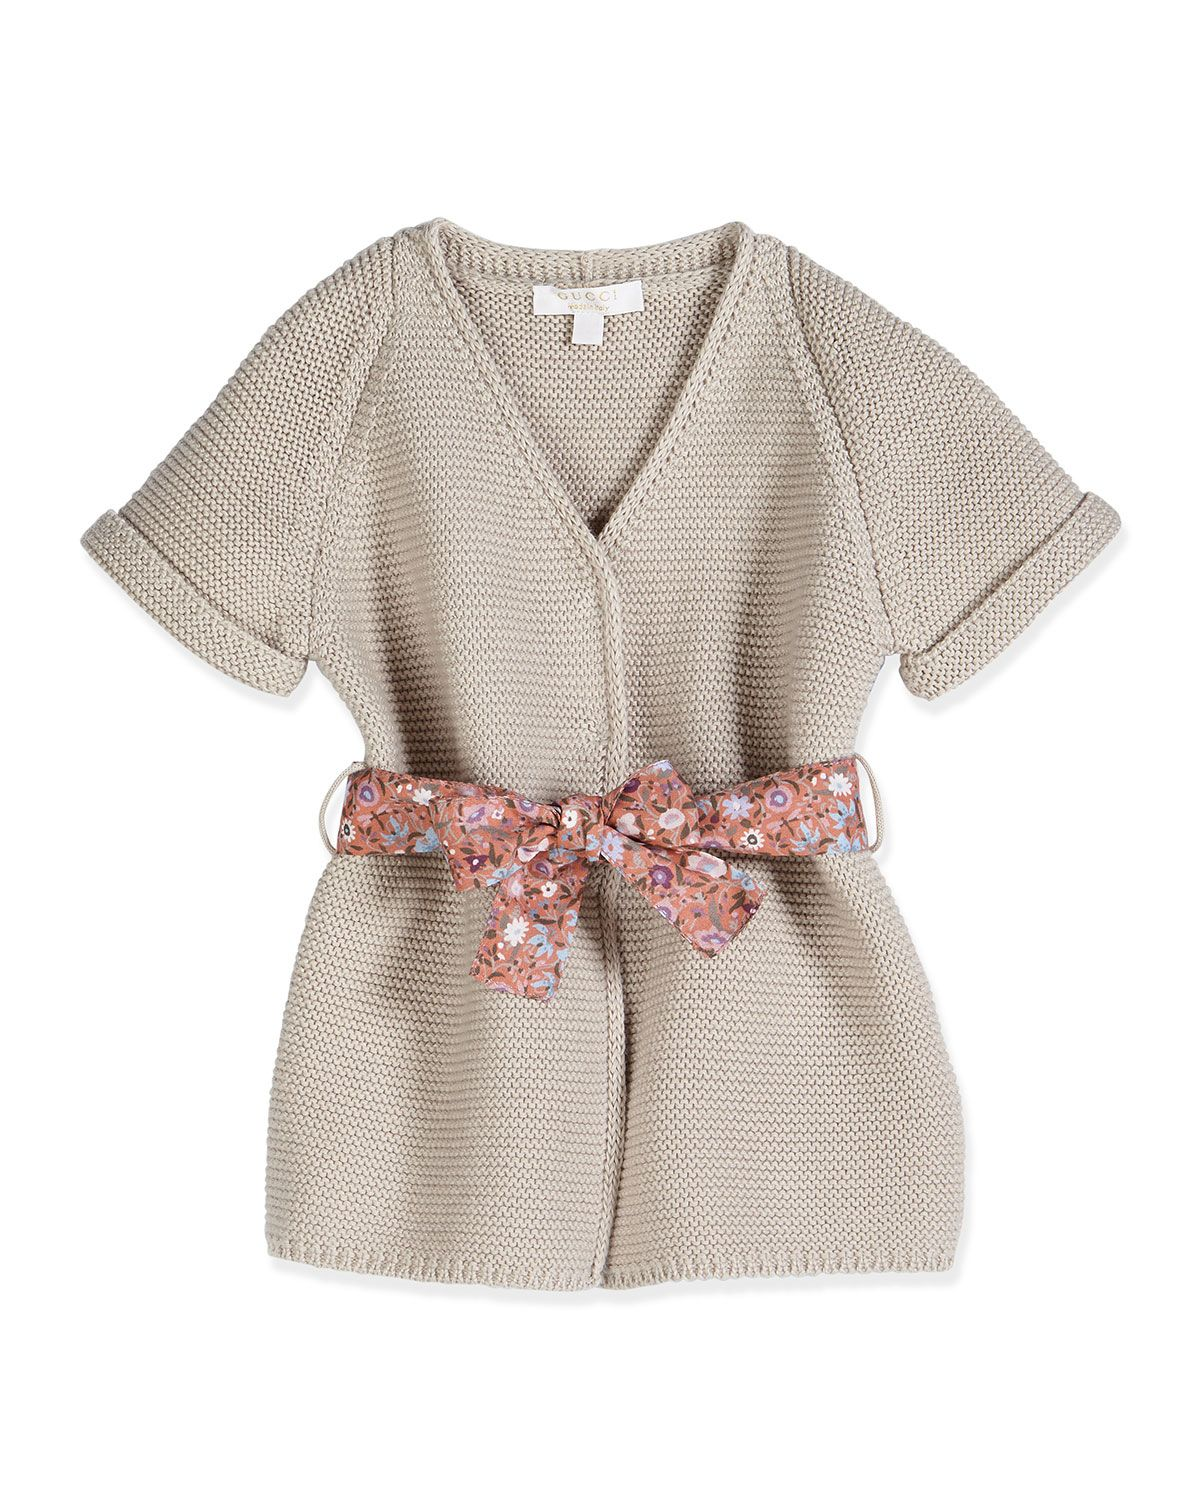 Gucci Short-Sleeve Belted Cardigan, Shell Pink, Size 3-36 Months ...